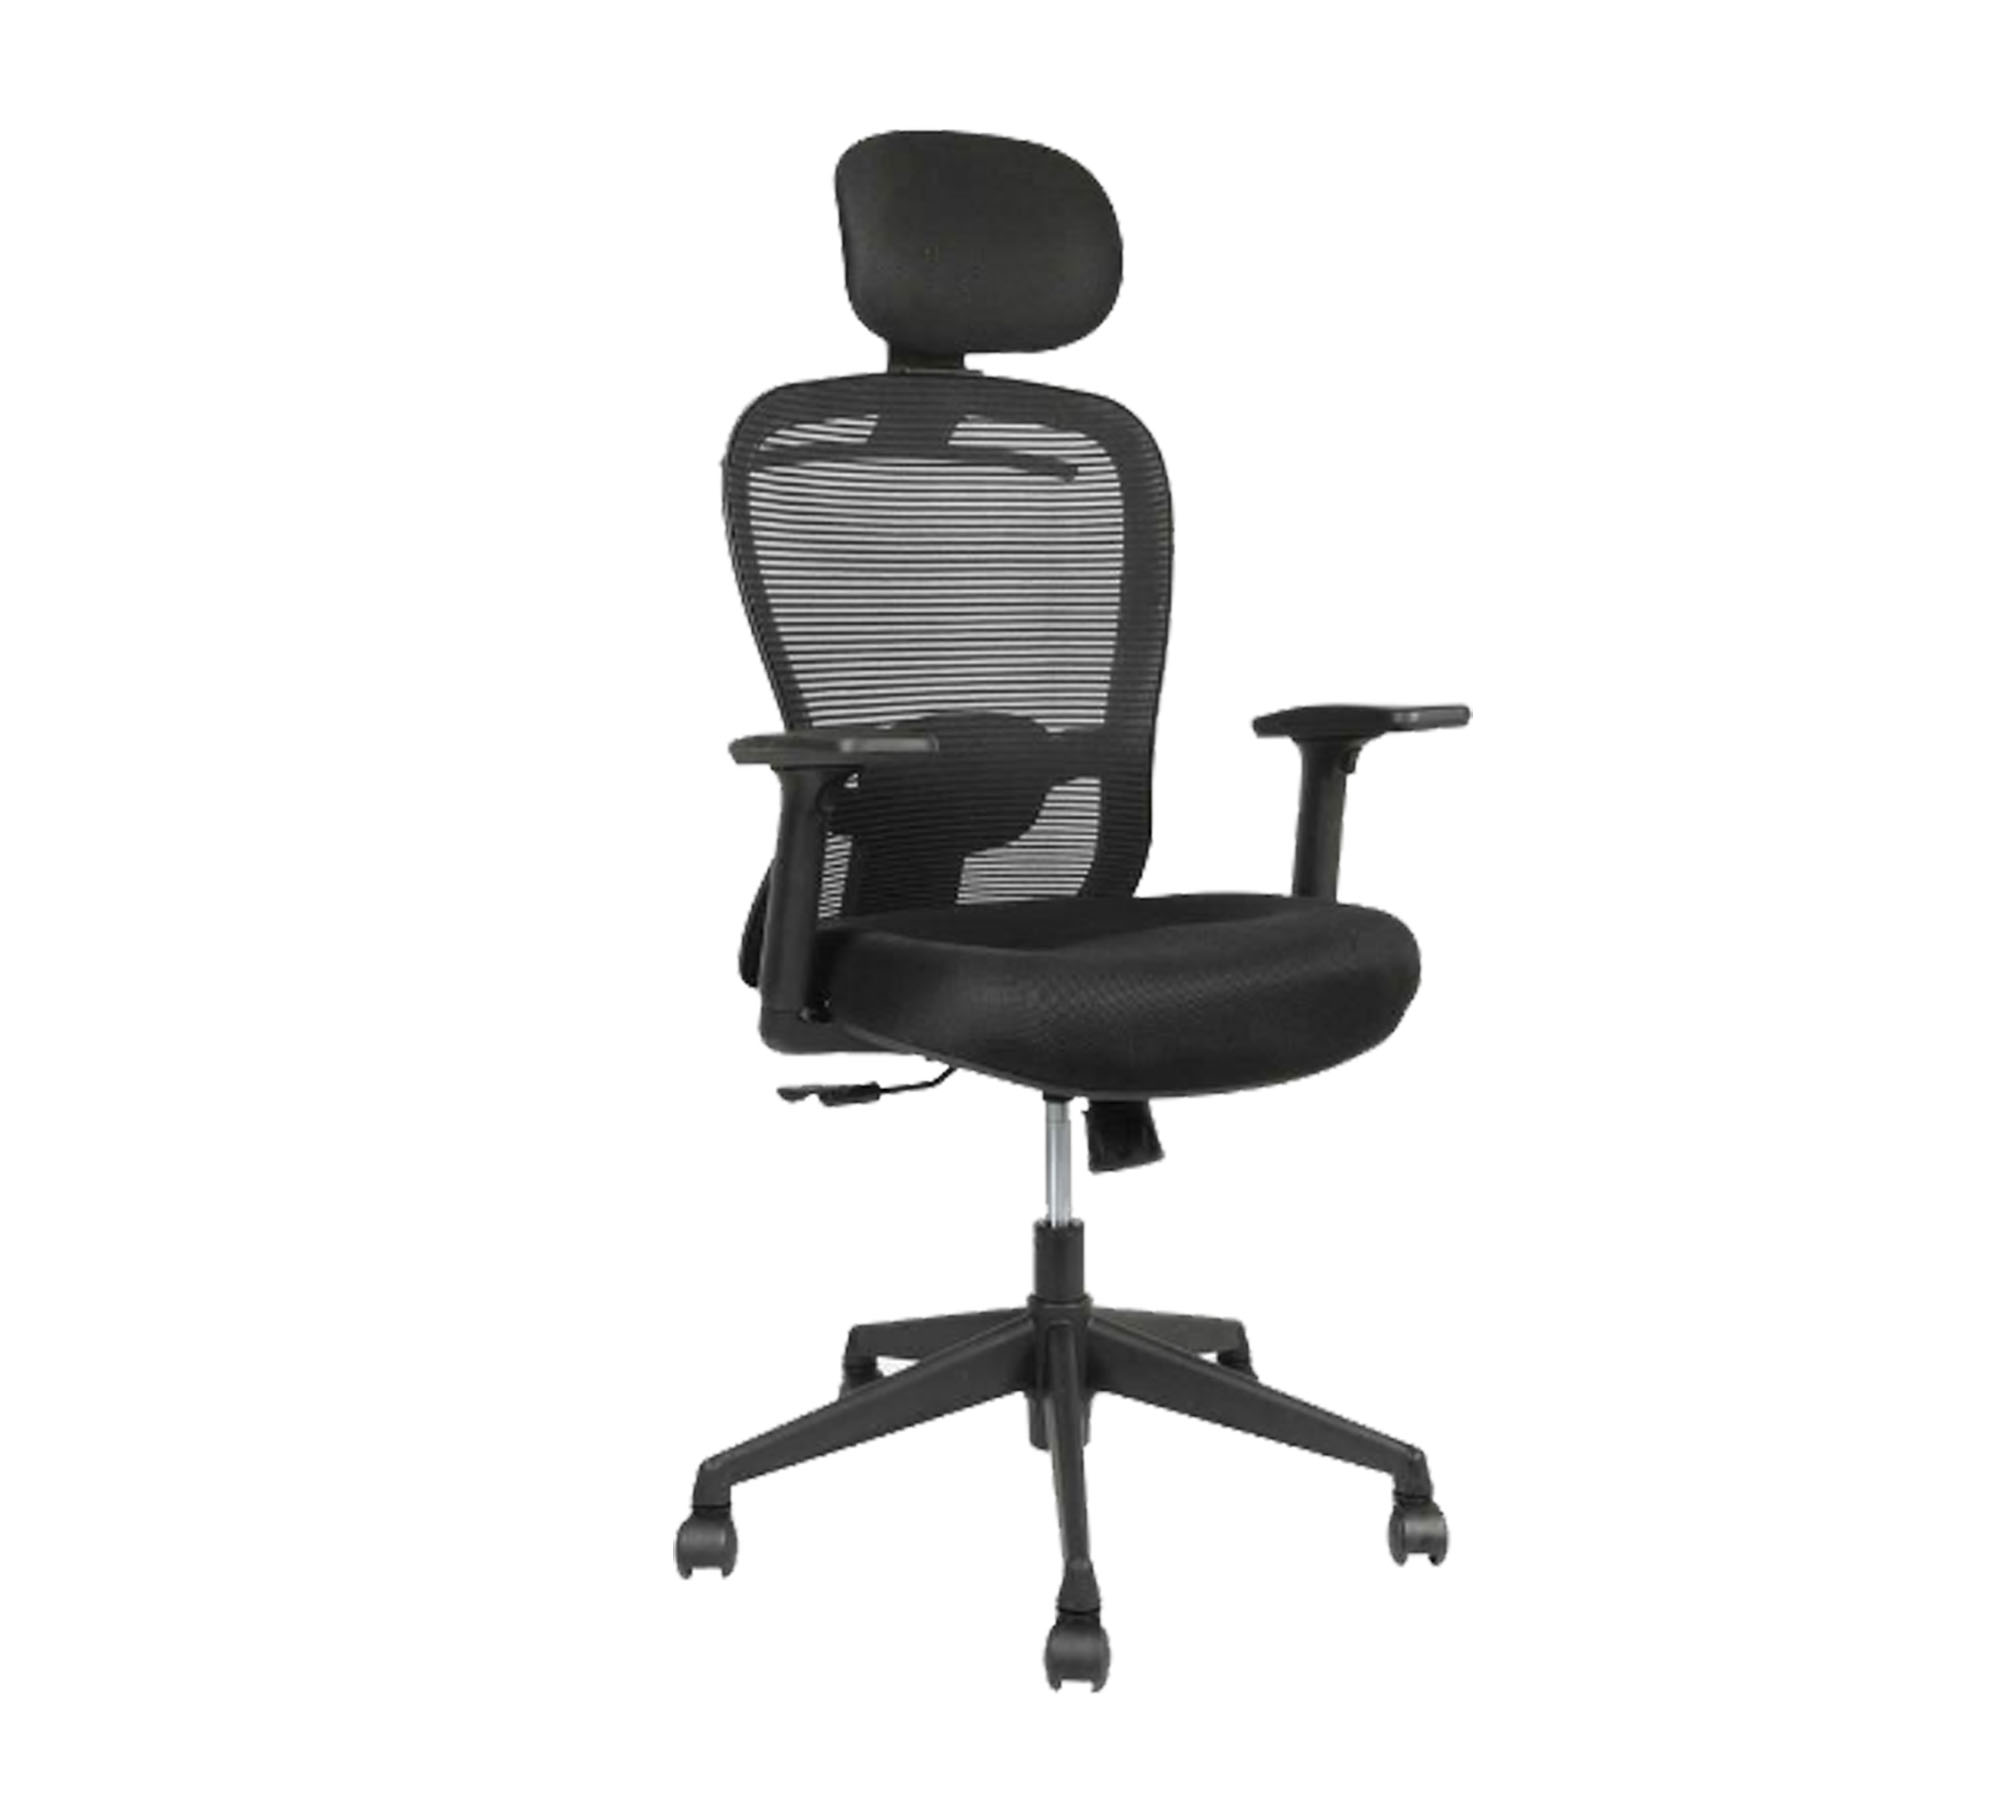 revolving chair manufacturers in ulhasnagar folding covers hobby lobby marketplace for suppliers buyers ciitrade